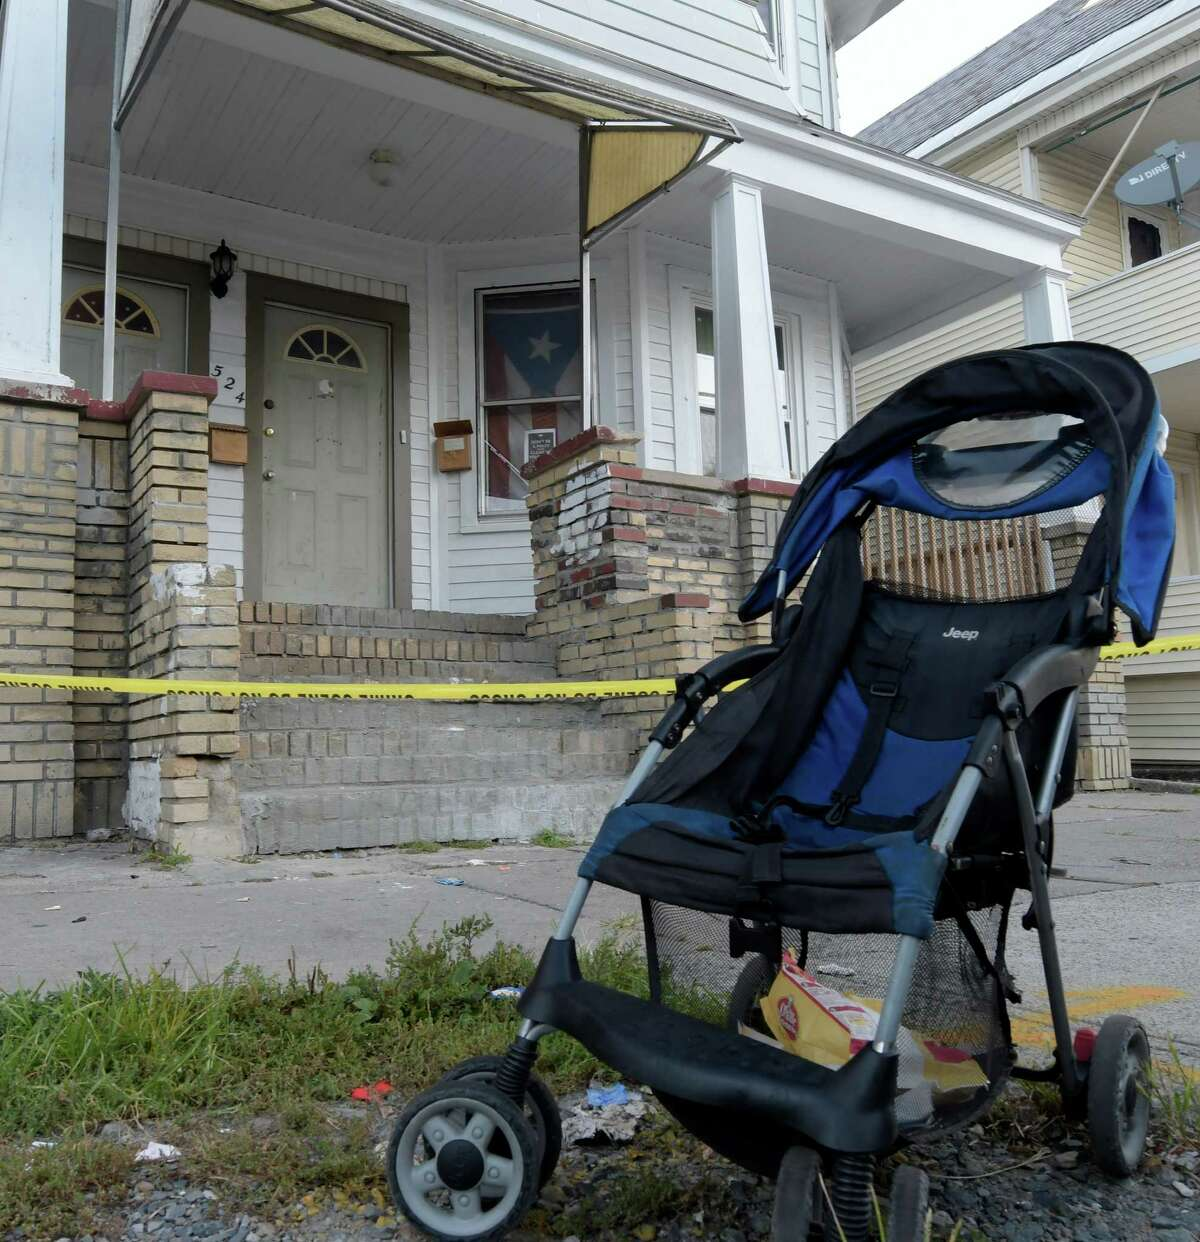 Schenectady Police police line tape keeps the scene secure at 524 Schenectady Street Friday Sept. 16, 2016 in Schenectady, N.Y. the scene of the murder of a 17 year old mother of one child. (Skip Dickstein/Times Union)